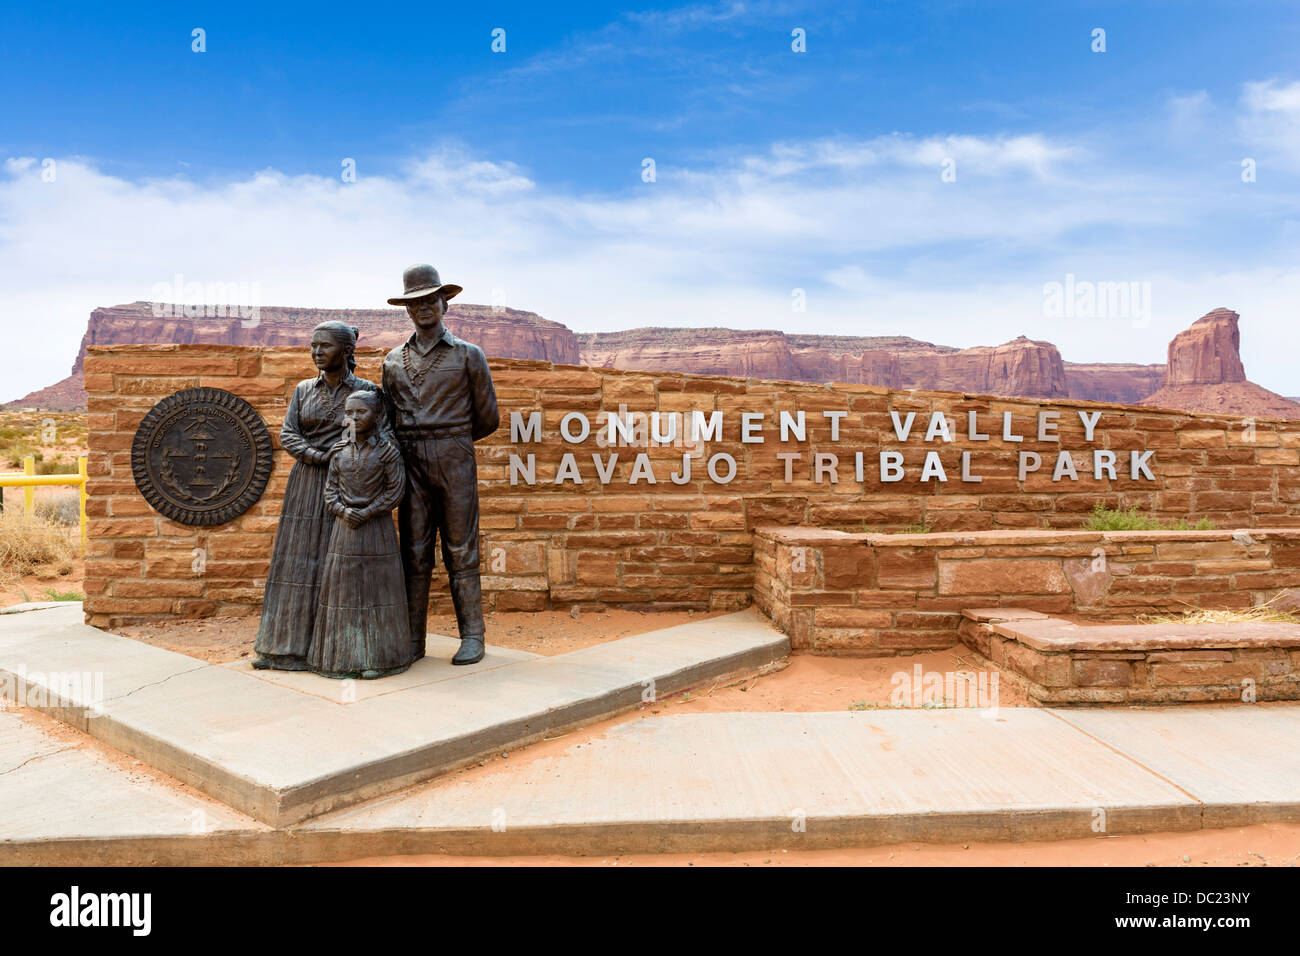 Entrance to Monument Valley Navajo Tribal Park, Monument Valley, Utah, USA - Stock Image